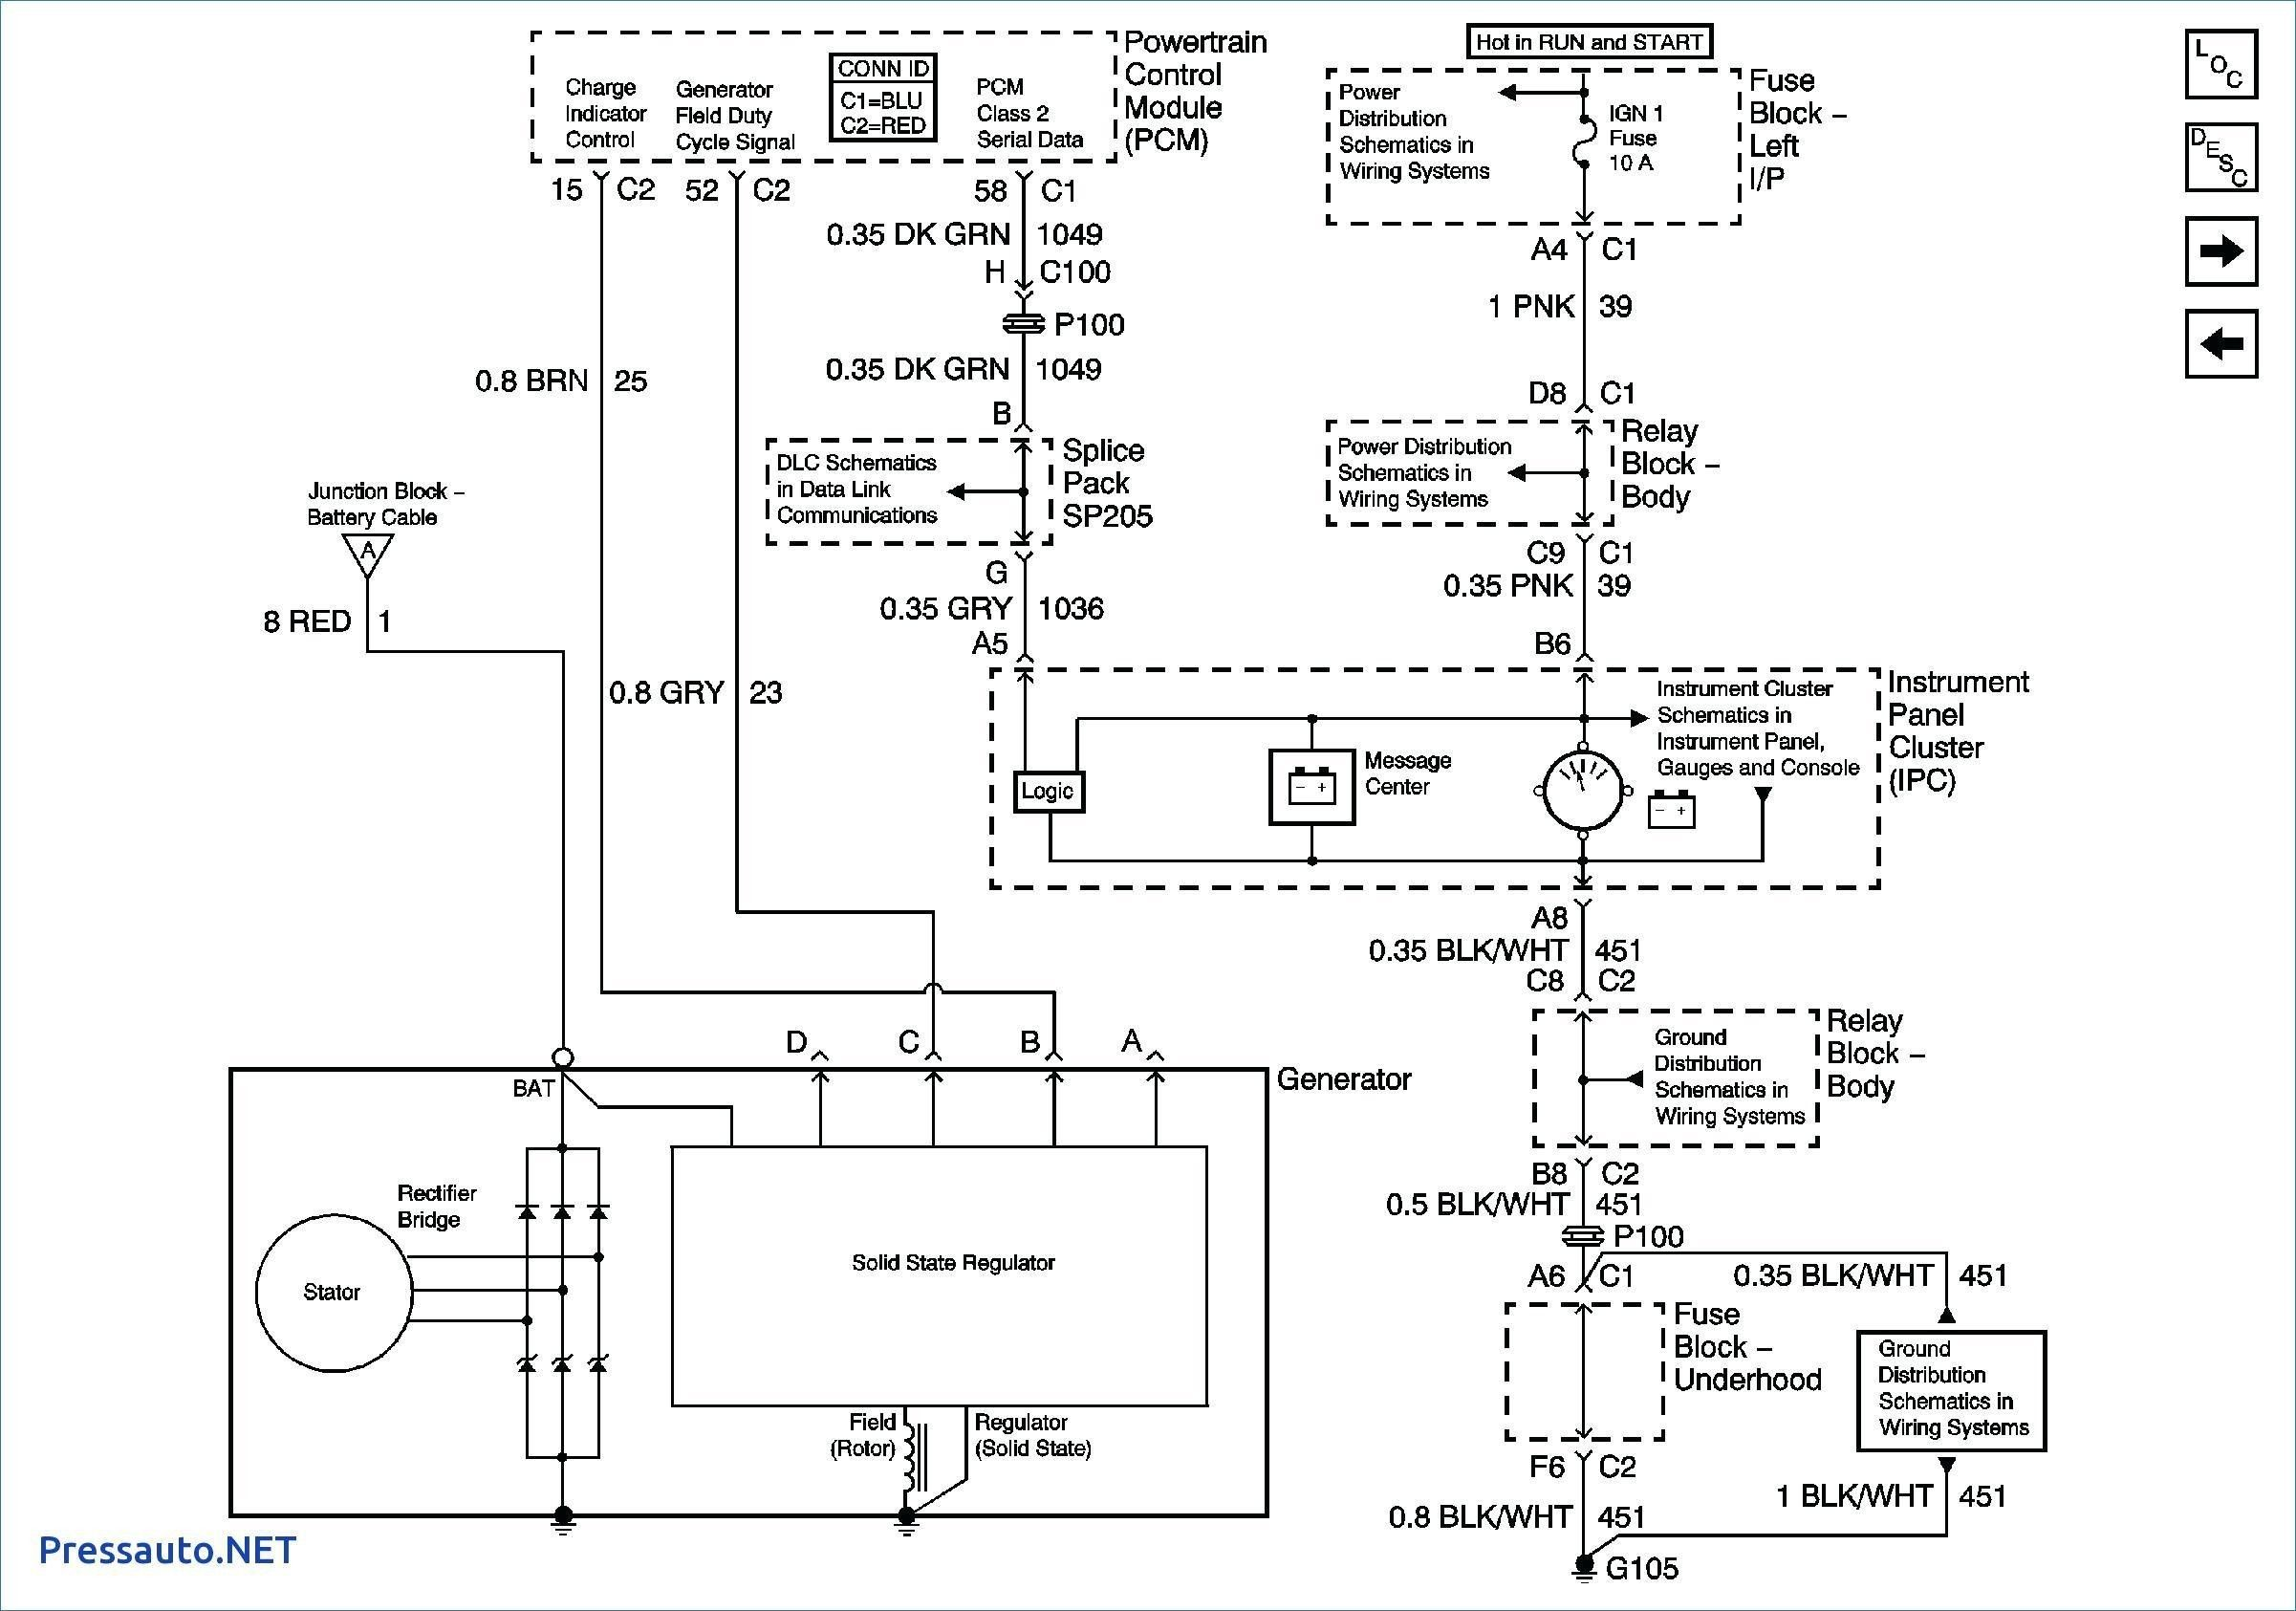 New Wiring Diagram Garage Door Opener Sensors Diagram Diagramsample Diagramtemplate Wiringdiagram Diagramchar Electrical Wiring Diagram Diagram Alternator